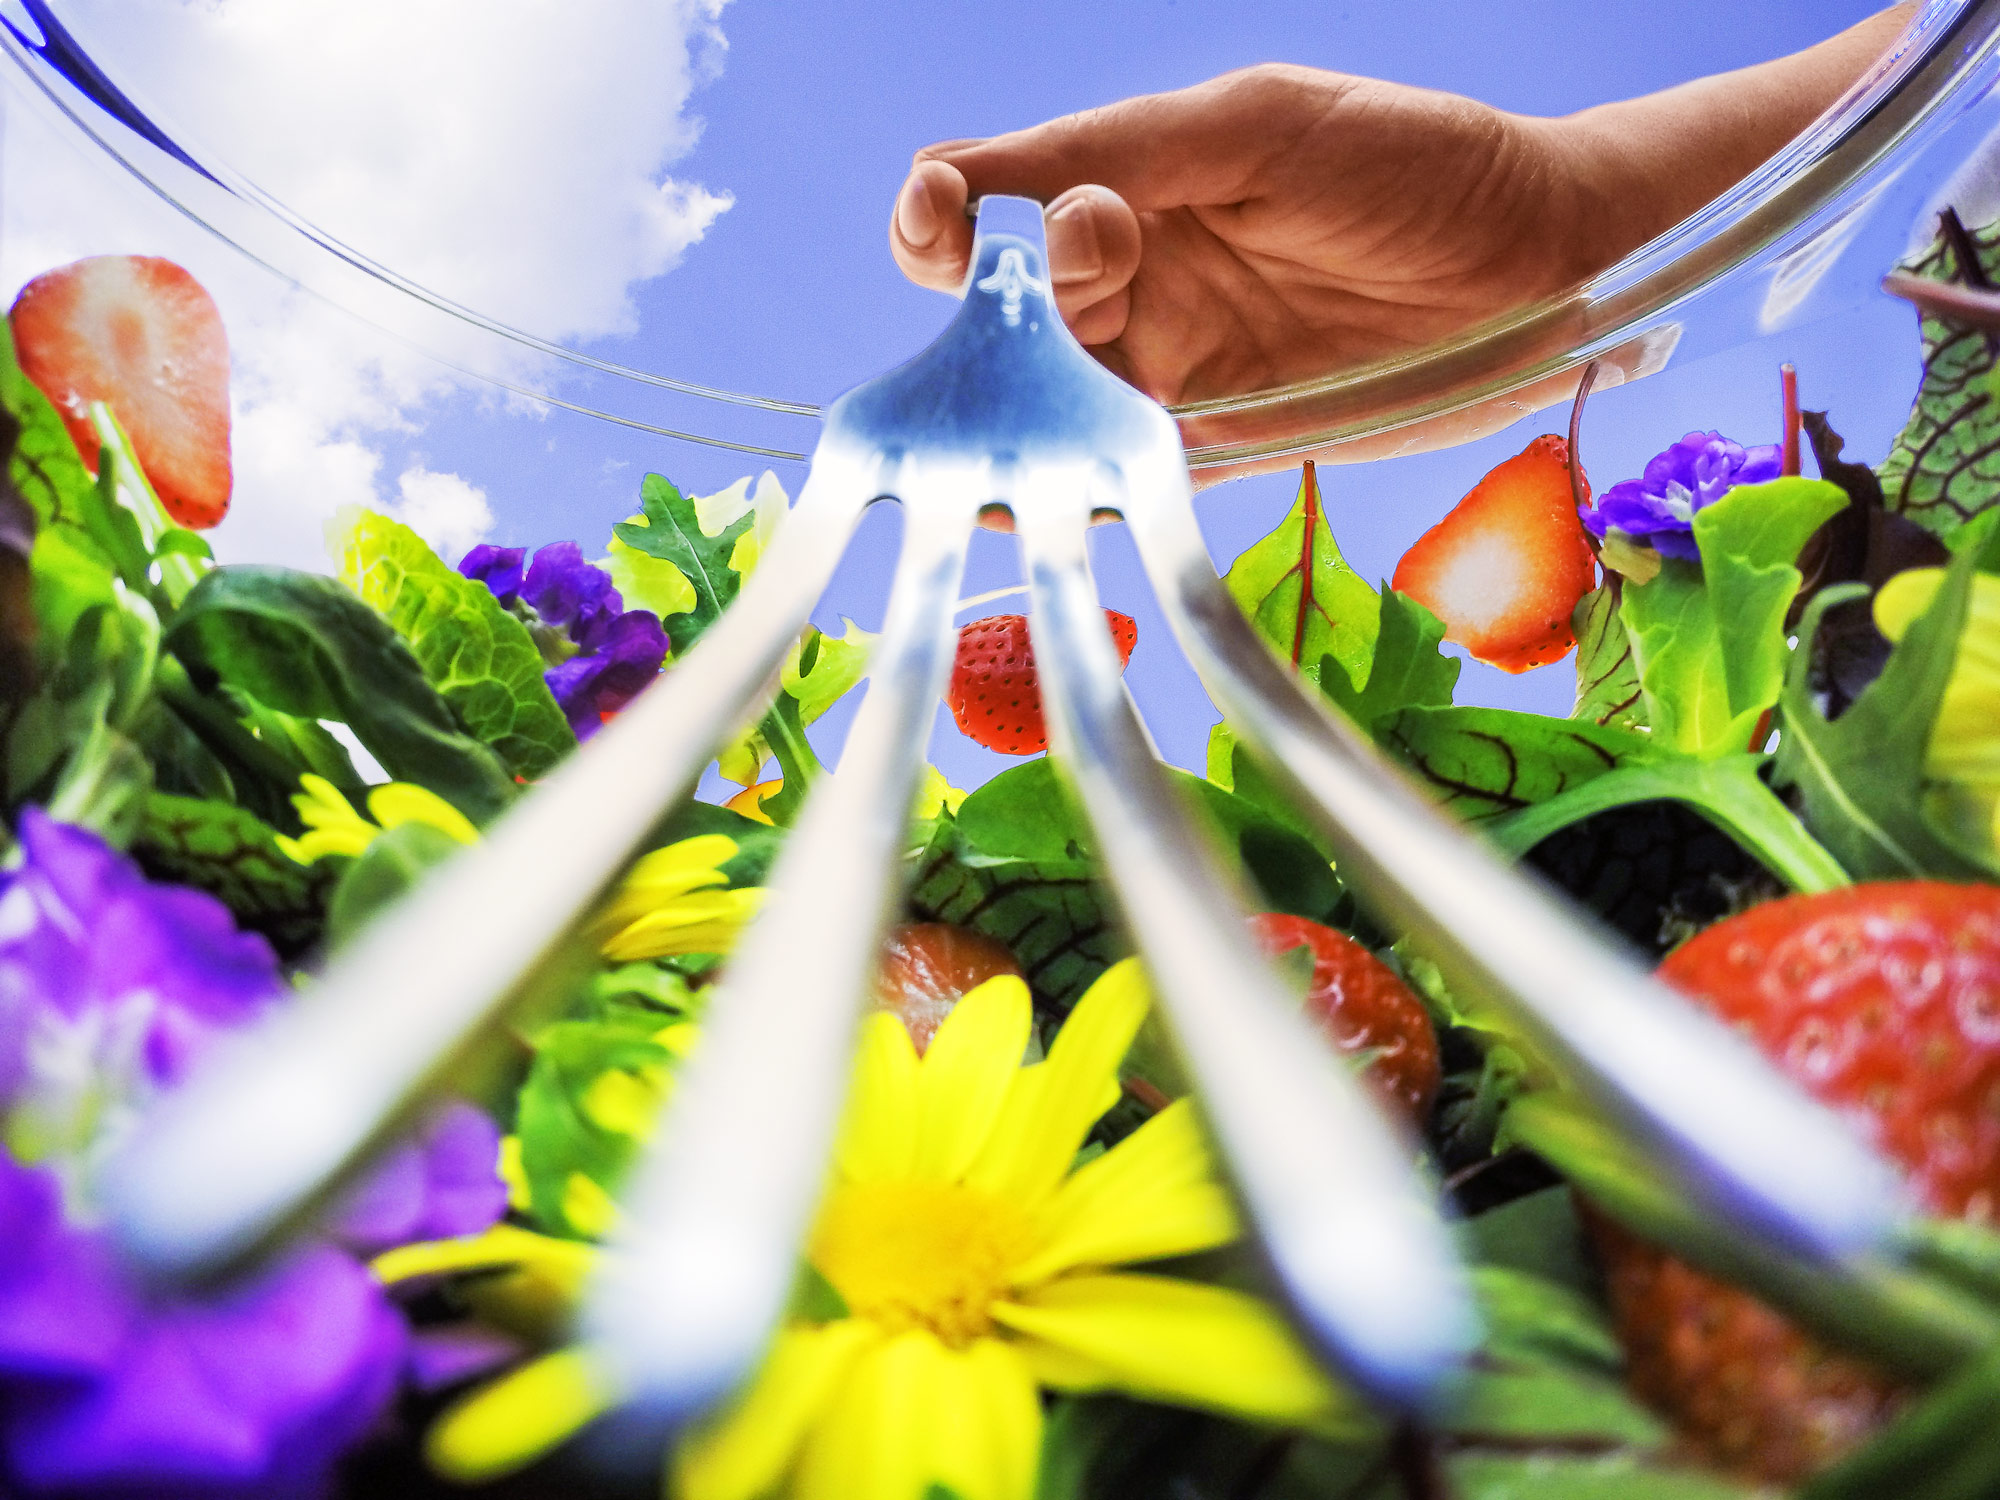 Inside food photo series, depicting a close up view of a summer salad with greens, flowers and strawberries. Seeing a gigantic fork coming right at you.